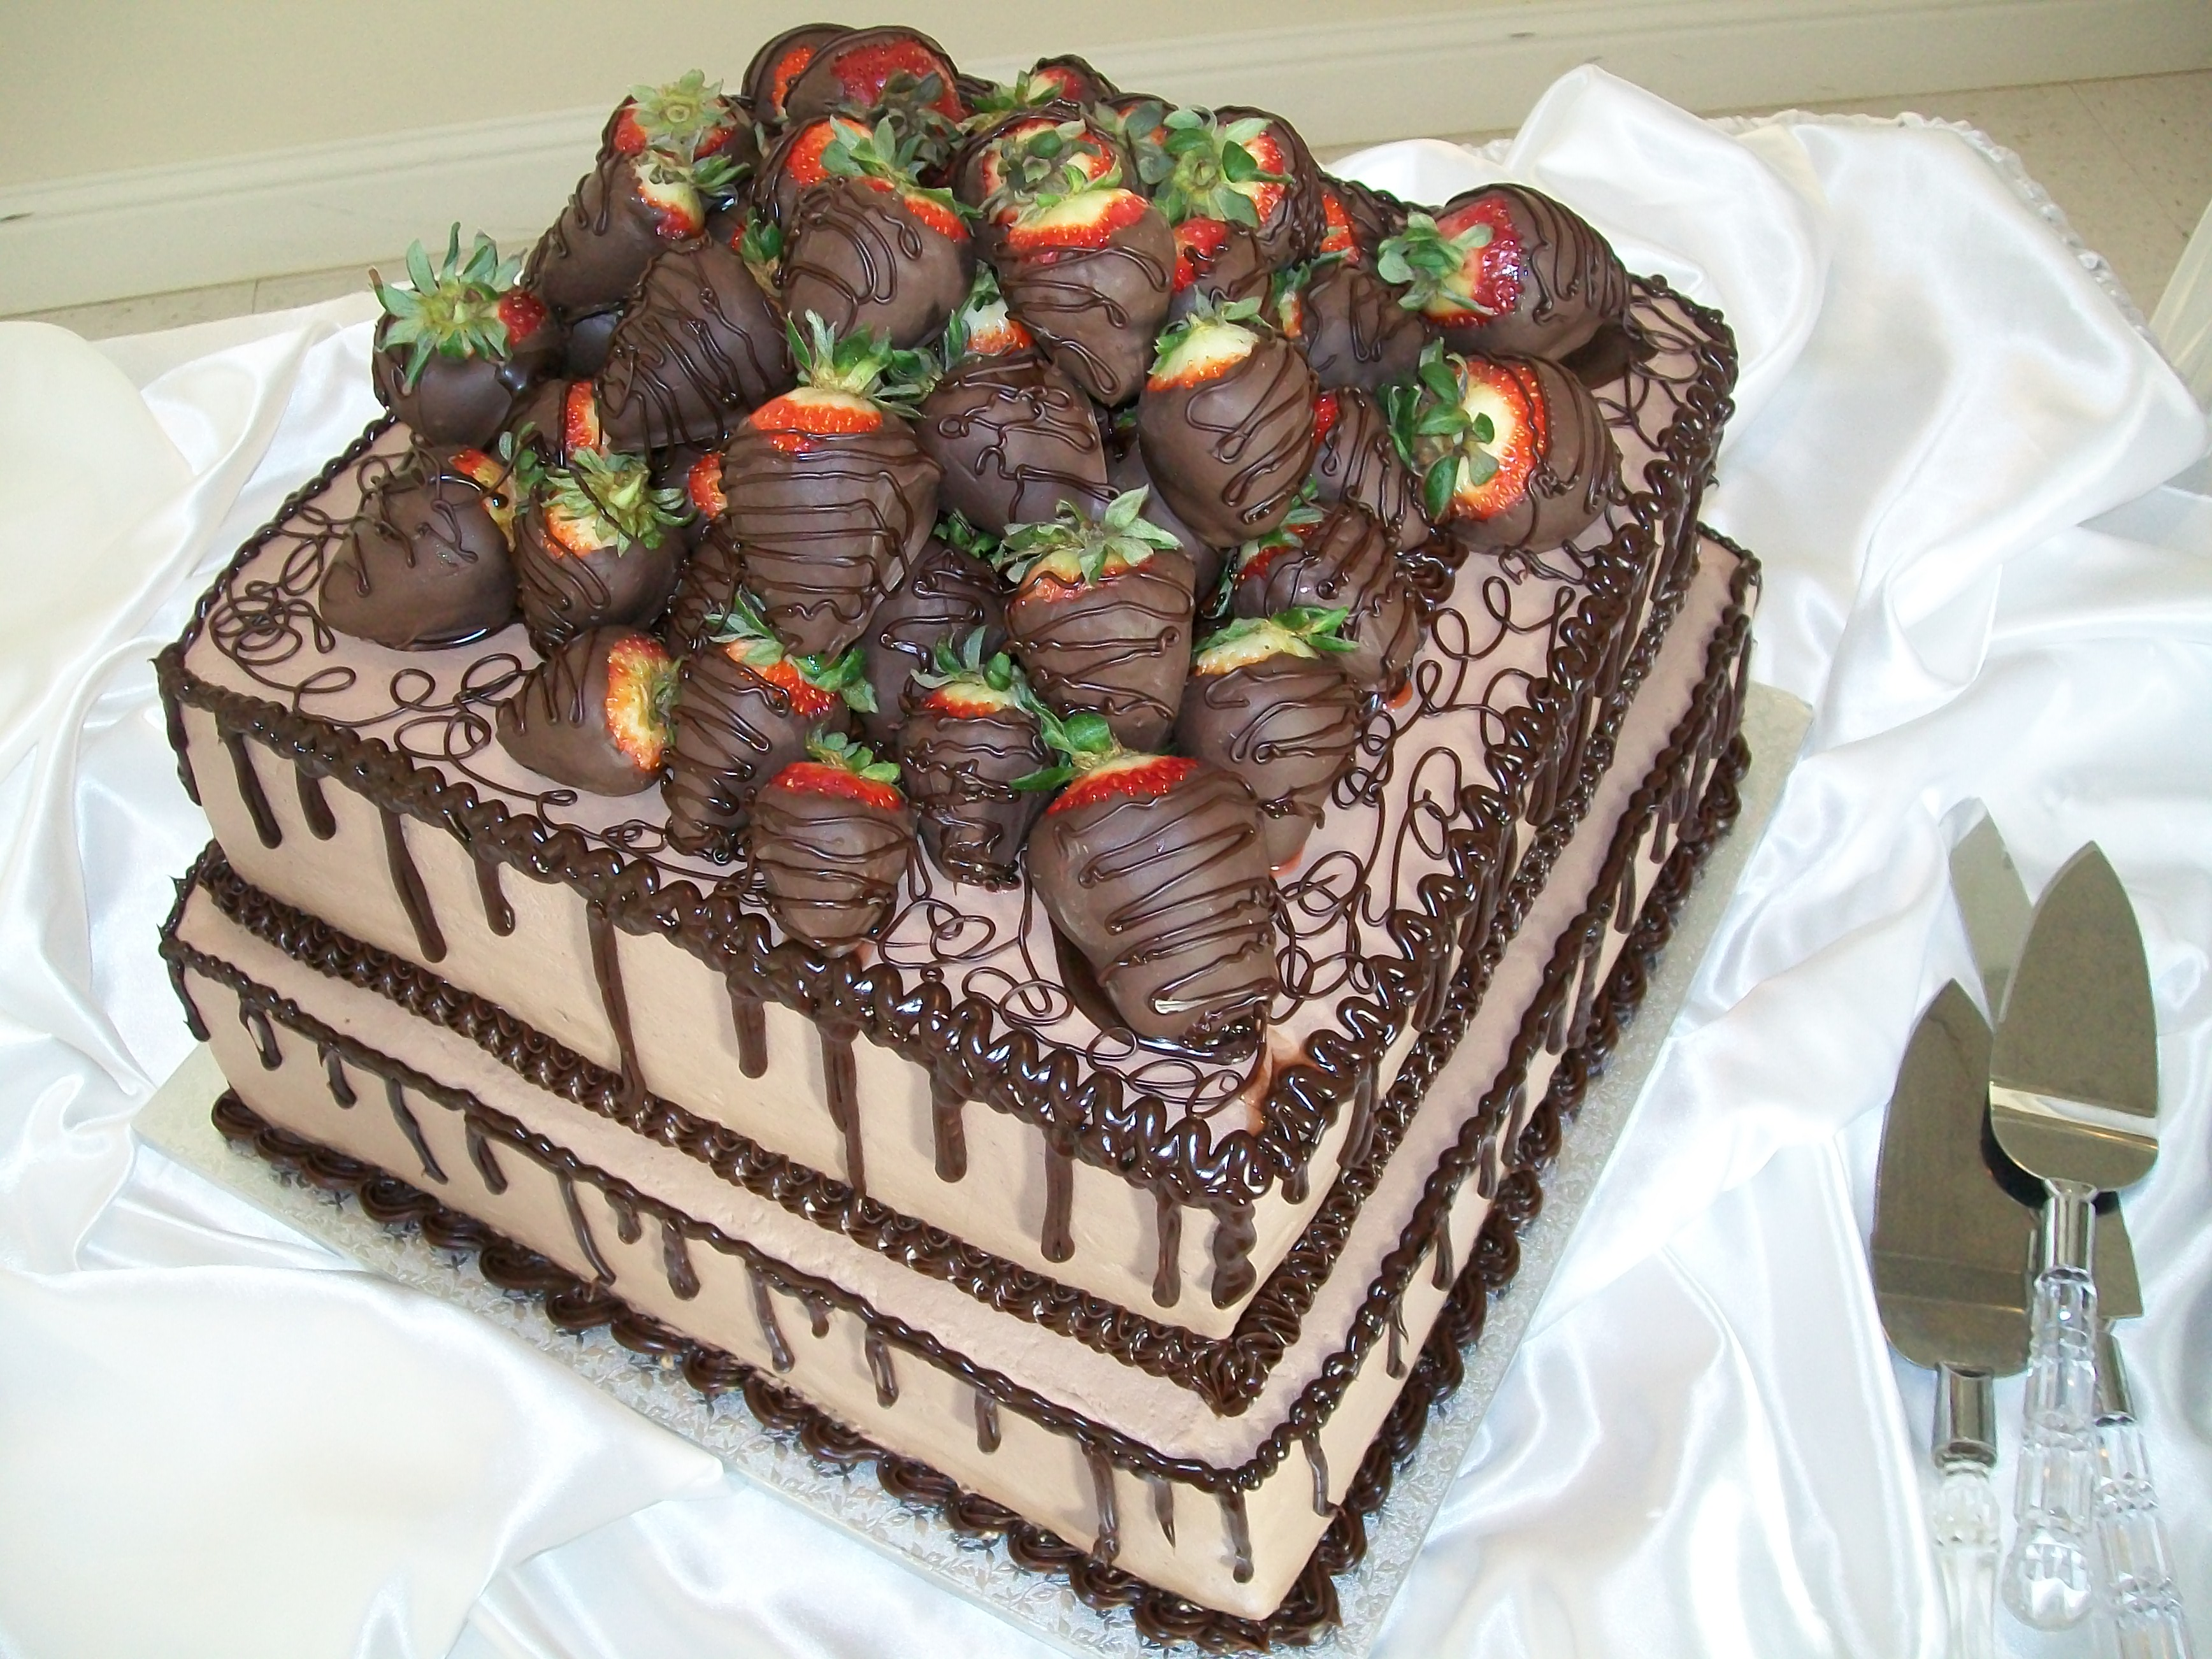 File:Chocolate Covered Strawberry Wedding Cake - panoramio.jpg ...